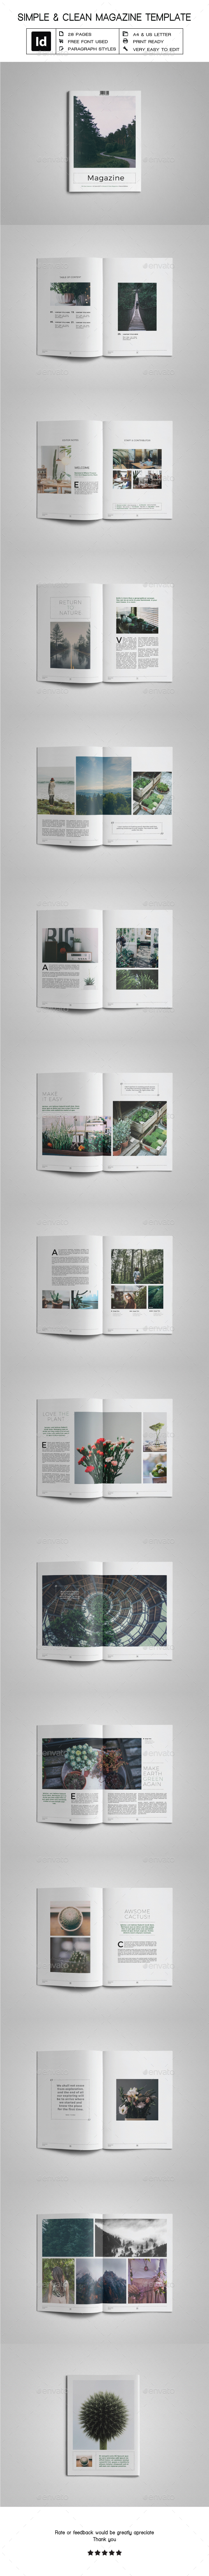 Simple & Clean Magazine Template VI - Magazines Print Templates